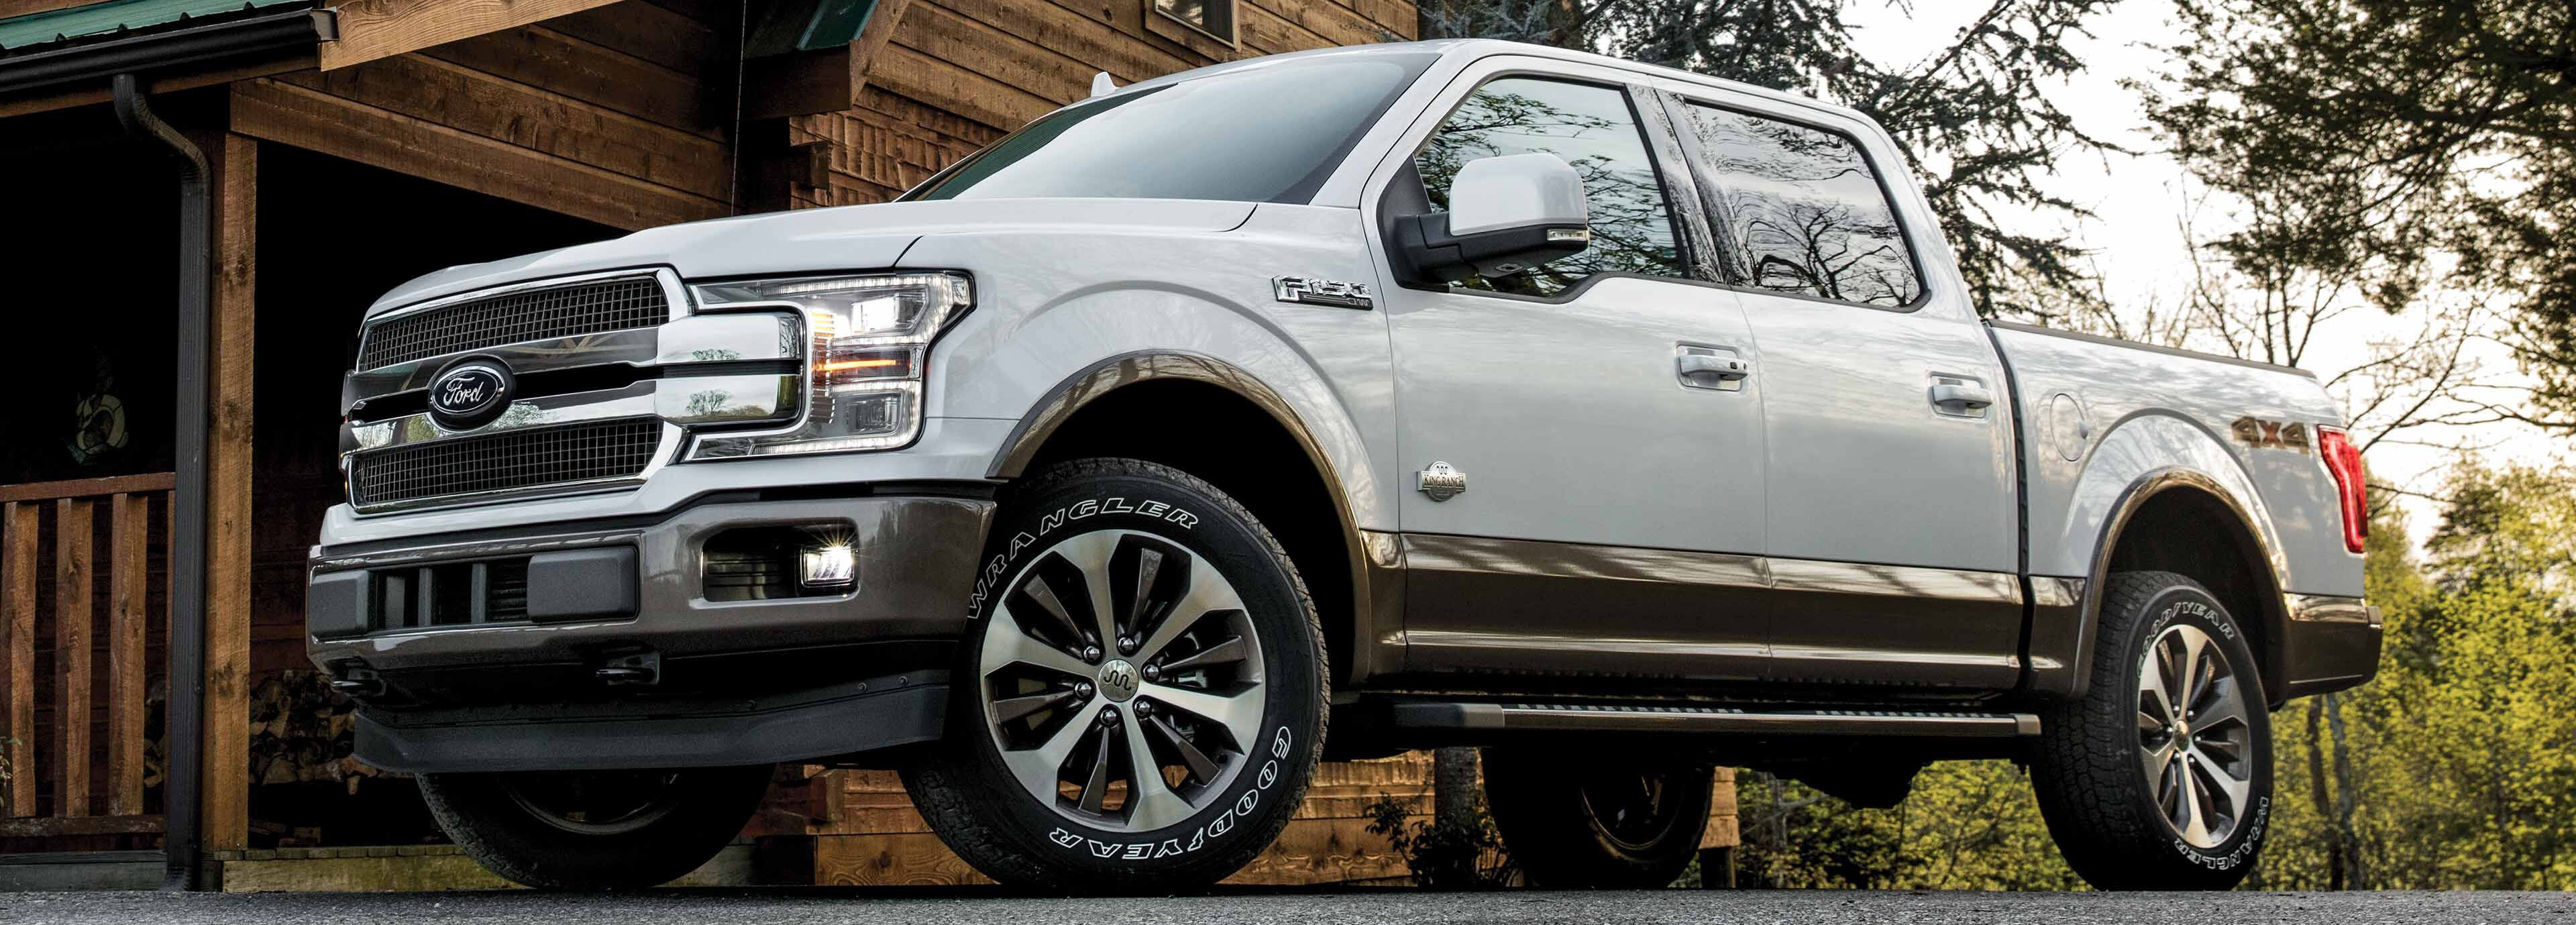 white 2019 ford f-150 parked in front of a cabin